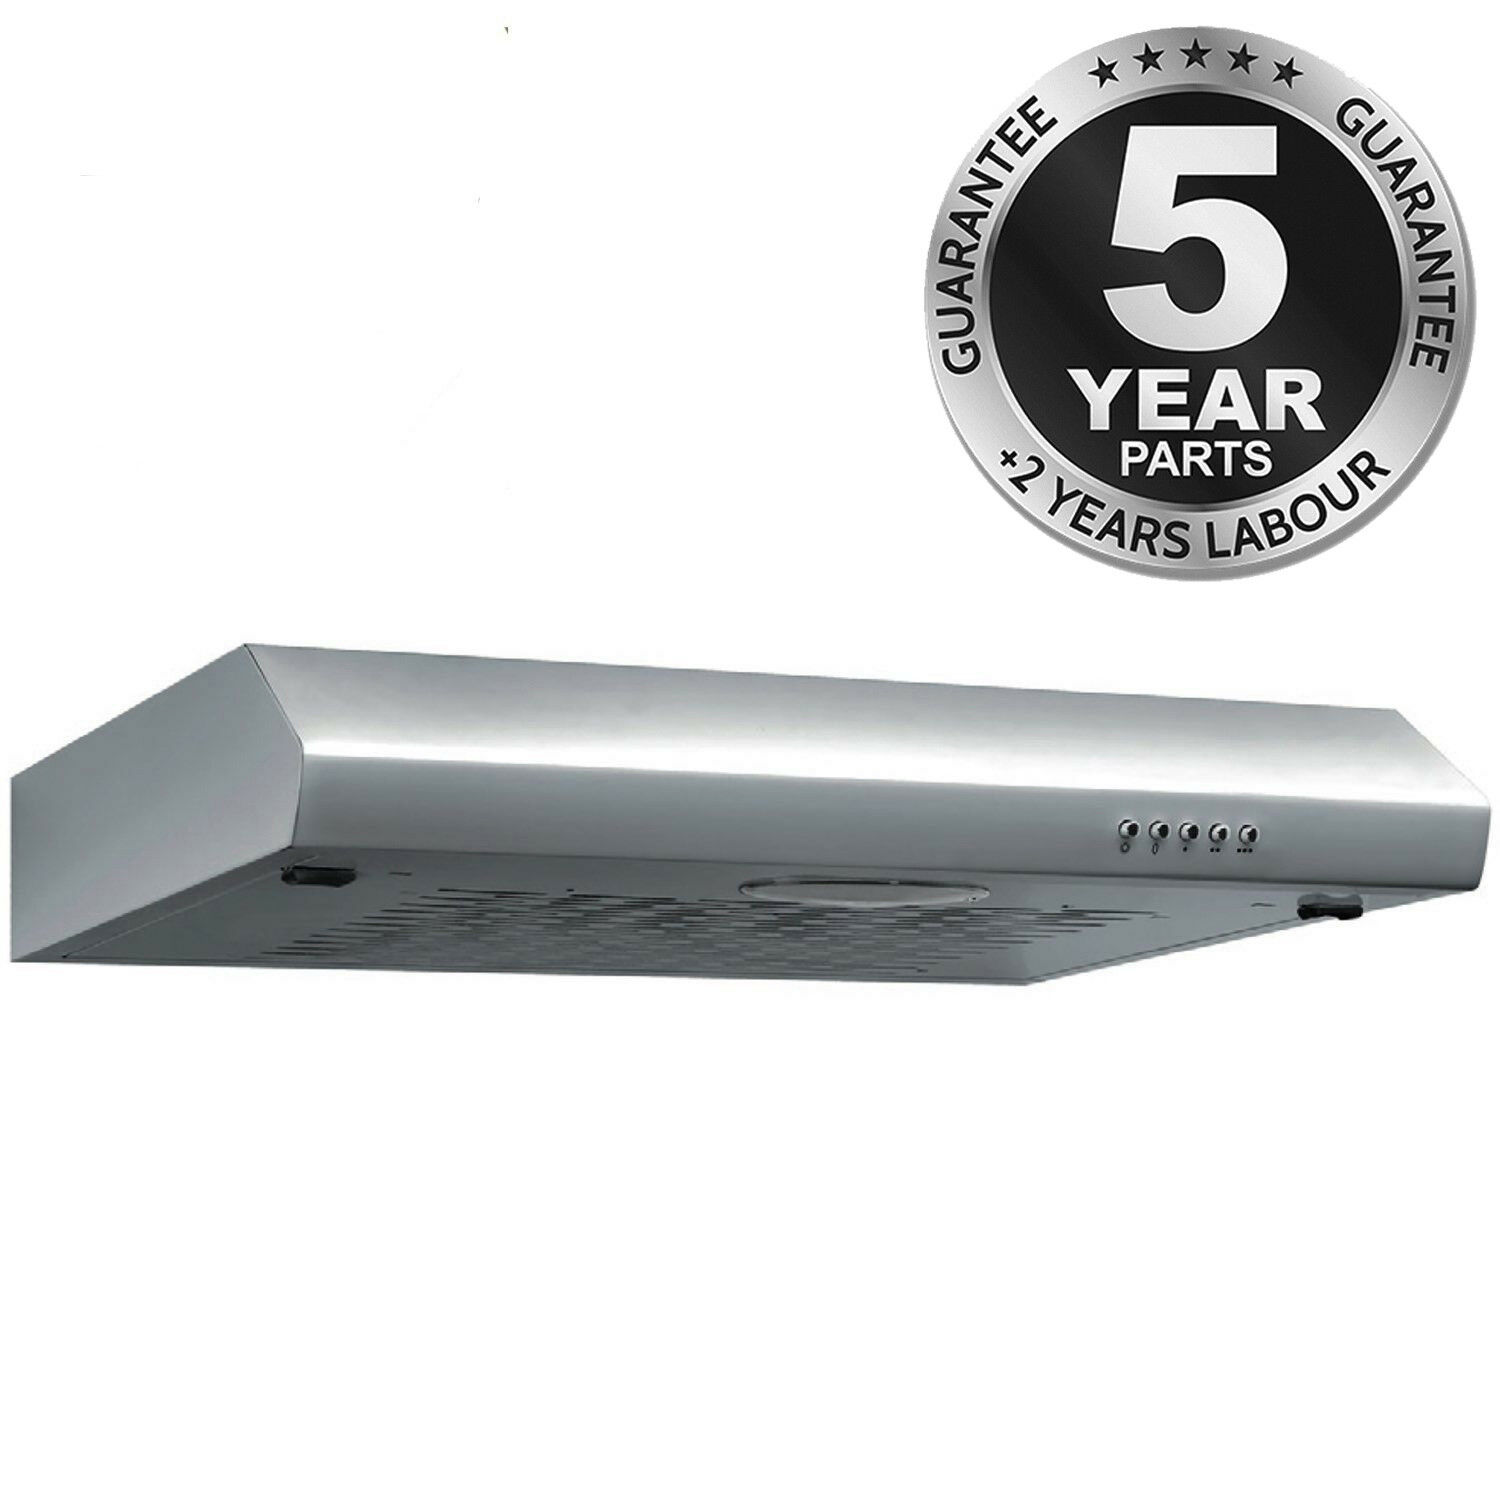 Sia st60ss 60cm visor cooker hood kitchen extractor fan in for Kitchen extractor fan